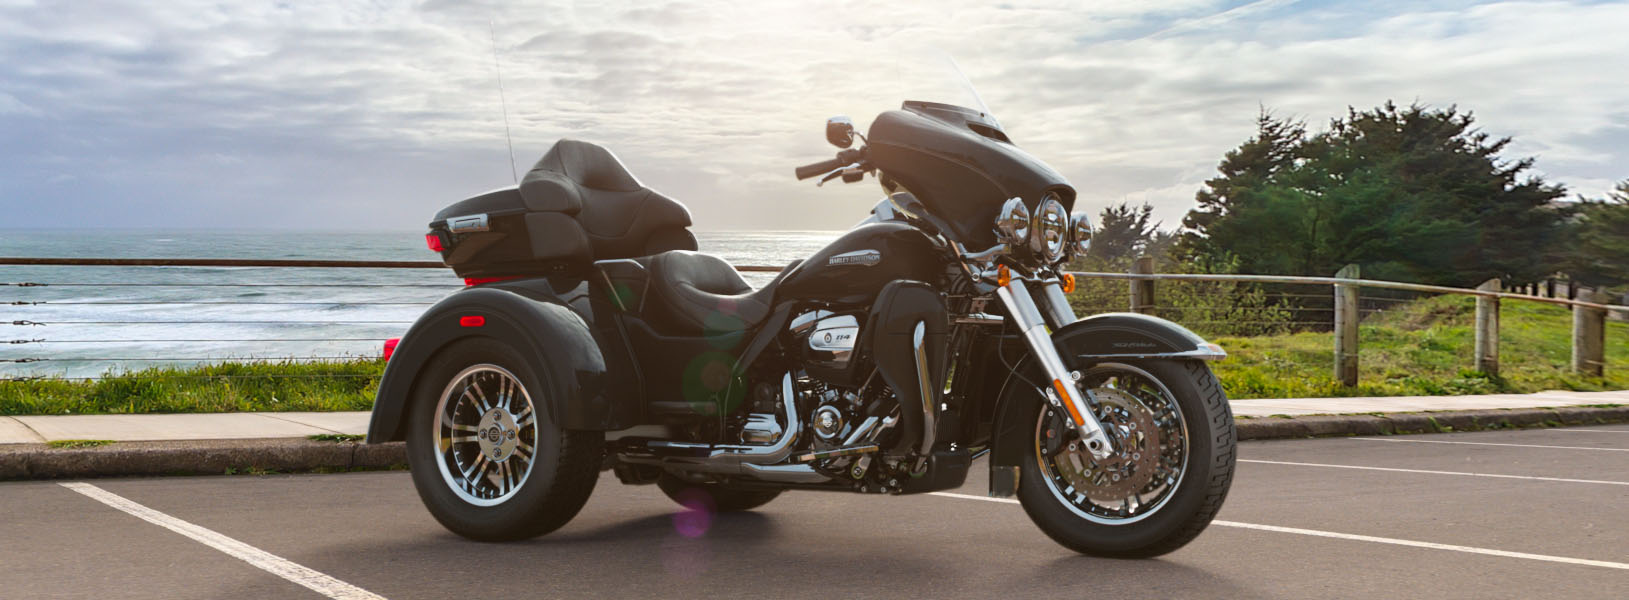 Tri Glide Ultra on